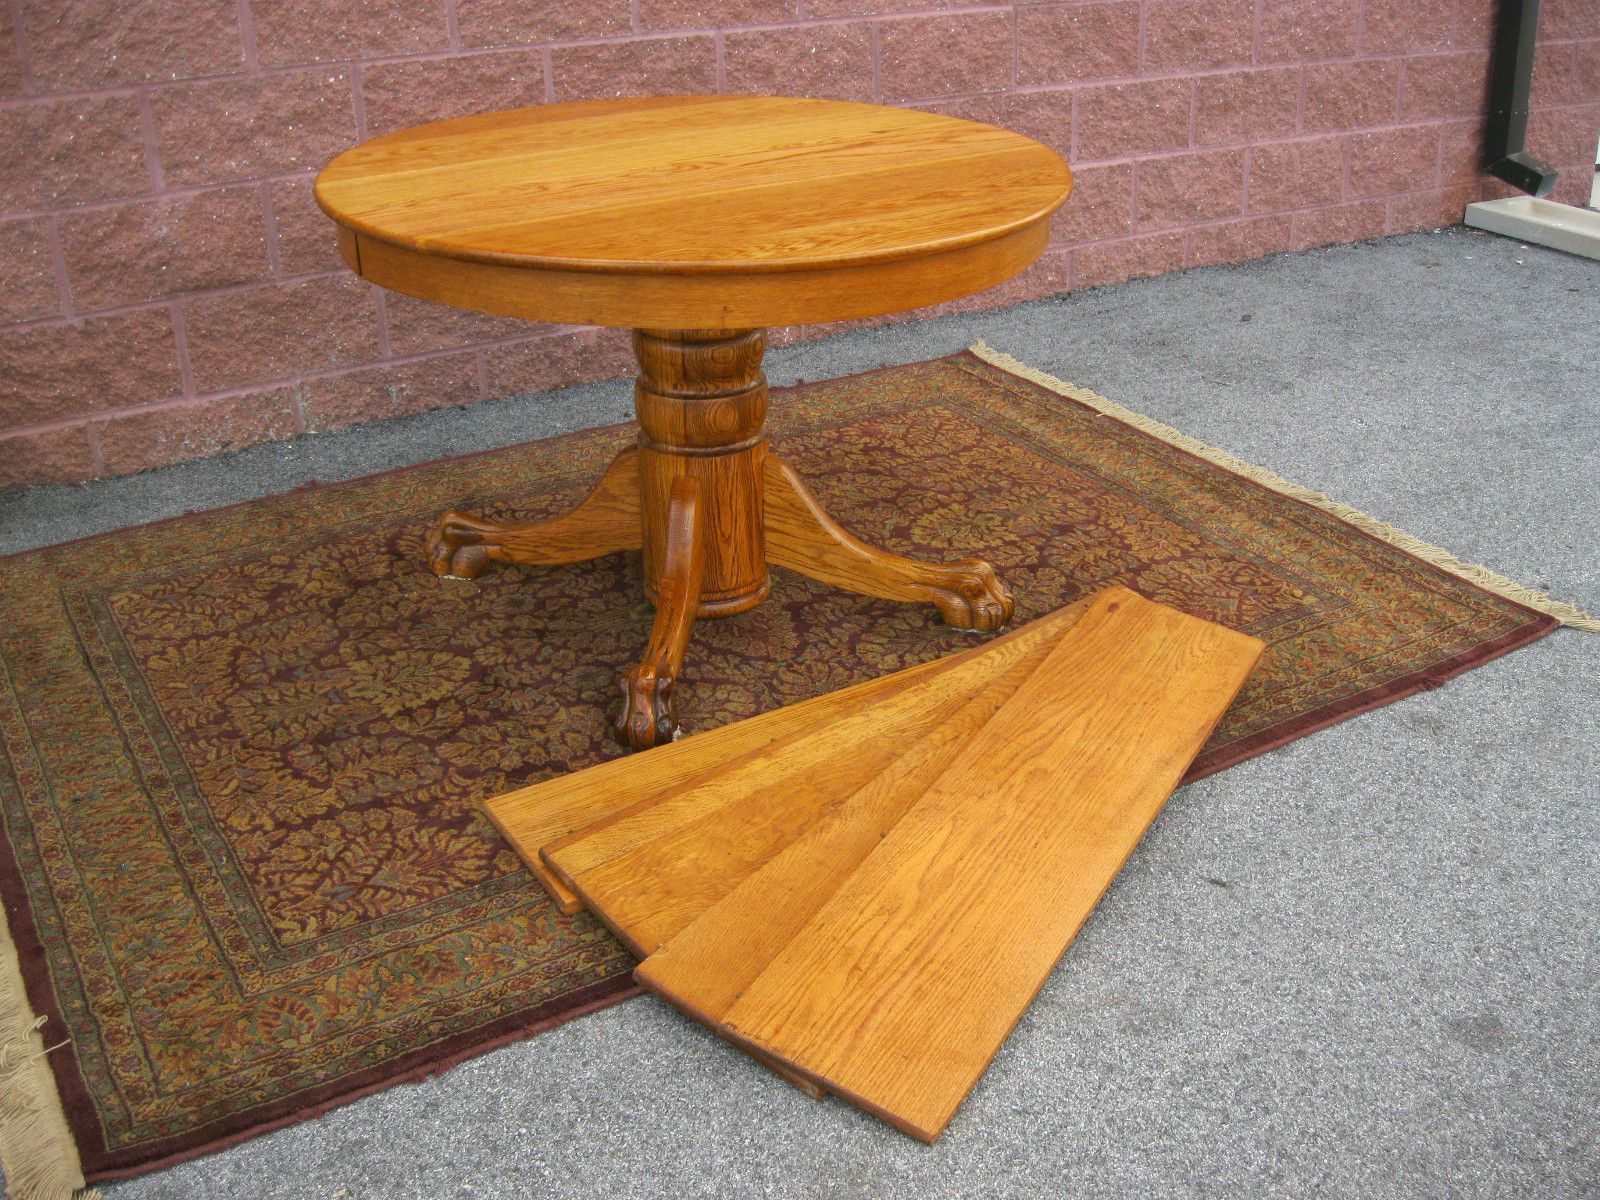 details about antique round solid oak lions paw foot dining table with 4 leaves pedestal base. Black Bedroom Furniture Sets. Home Design Ideas